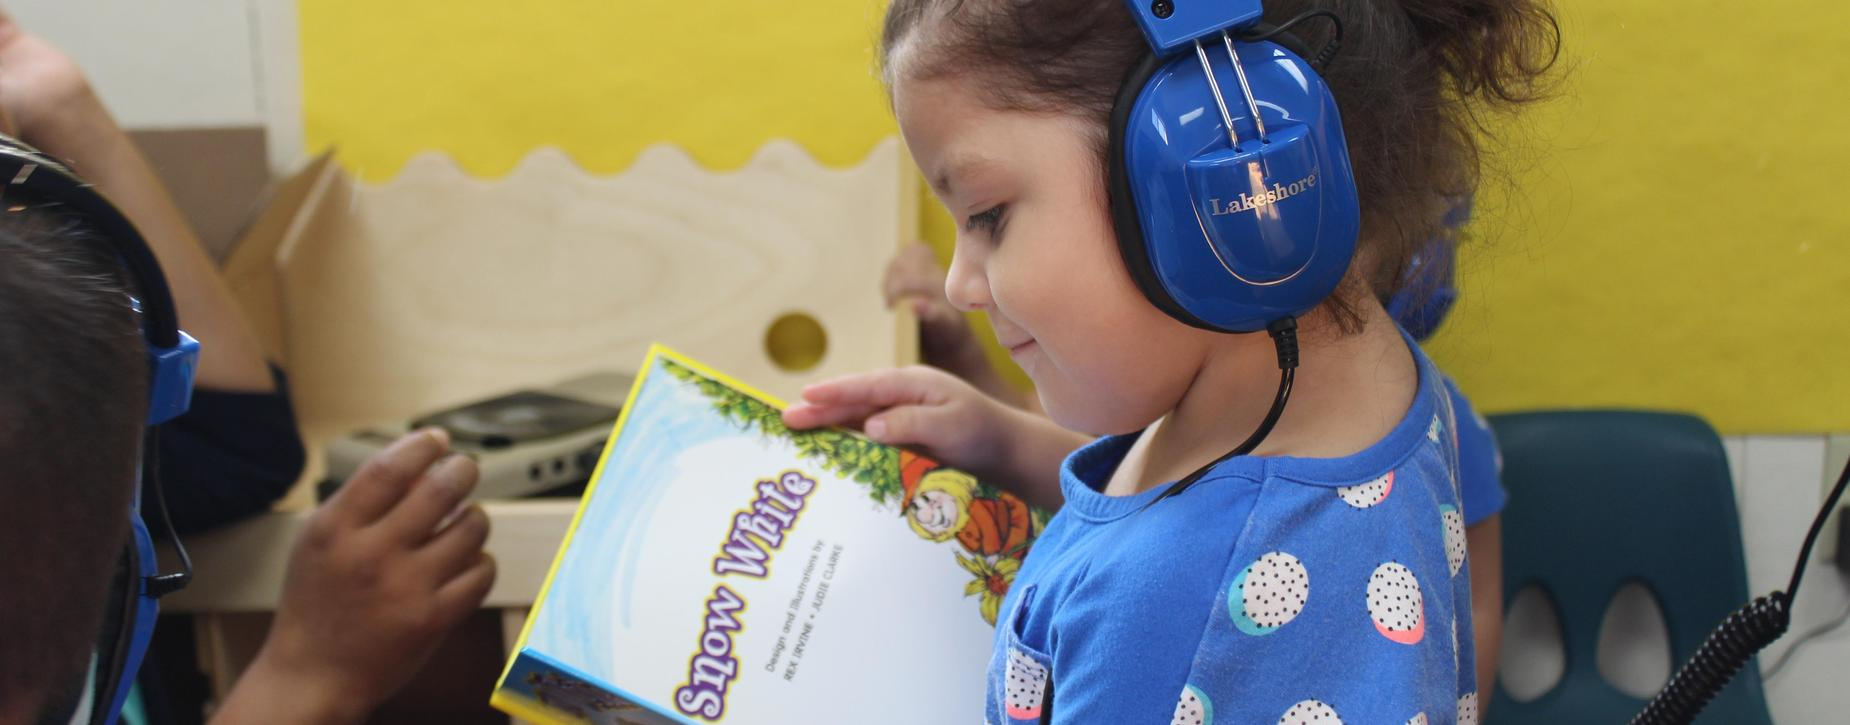 Girl with Audio Book